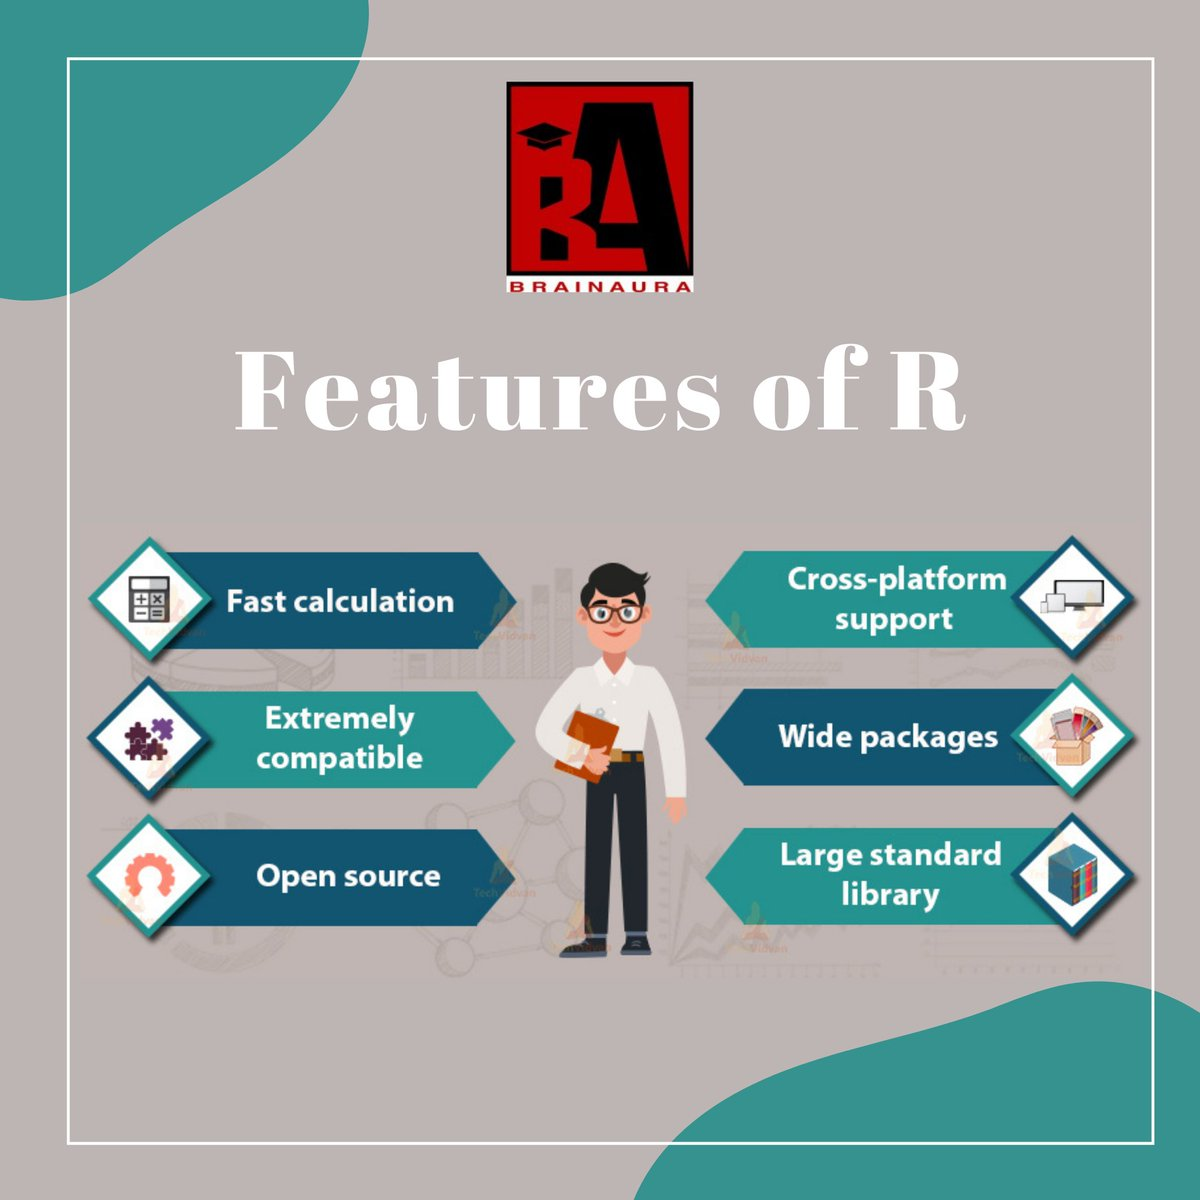 Features of R programing Language R is essential in data science because of its flexibility in the field of statistics.  #brainaura  #shorttermcourse #onlinecourses #bigdata #business #dataanalysis #phd #phdscholar #researchers #marketresearchcompany #socialmedia #technology https://t.co/jLrIOl66Xh